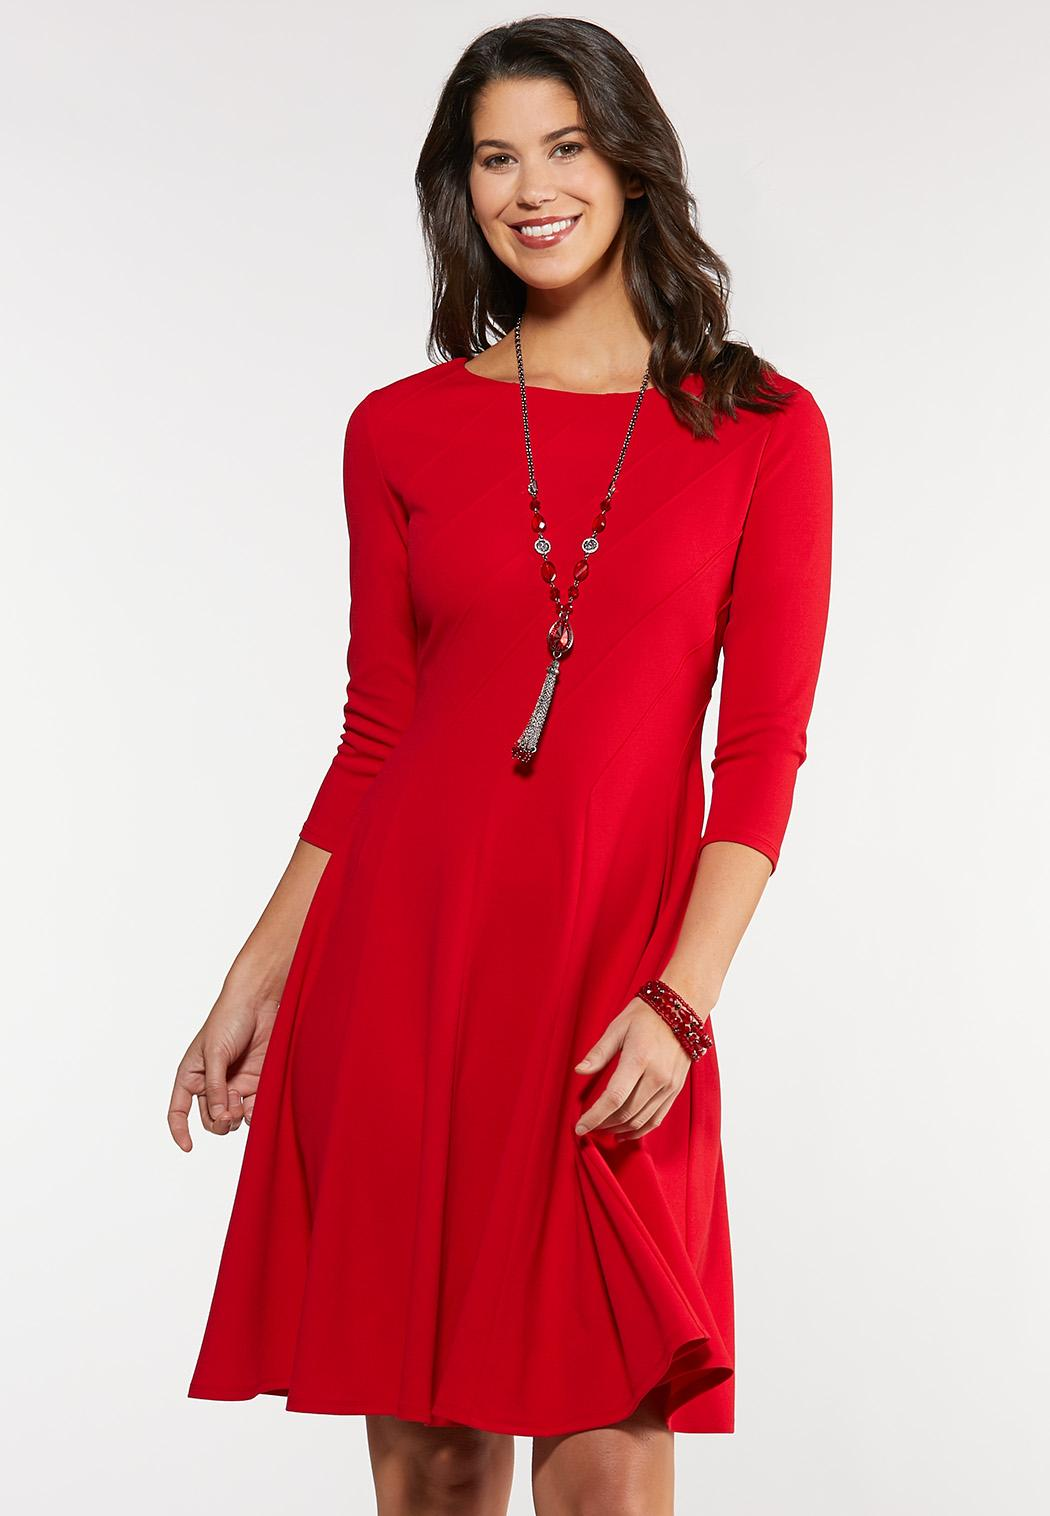 Plus Size Red Seamed Midi Dress Plus Sizes Cato Fashions